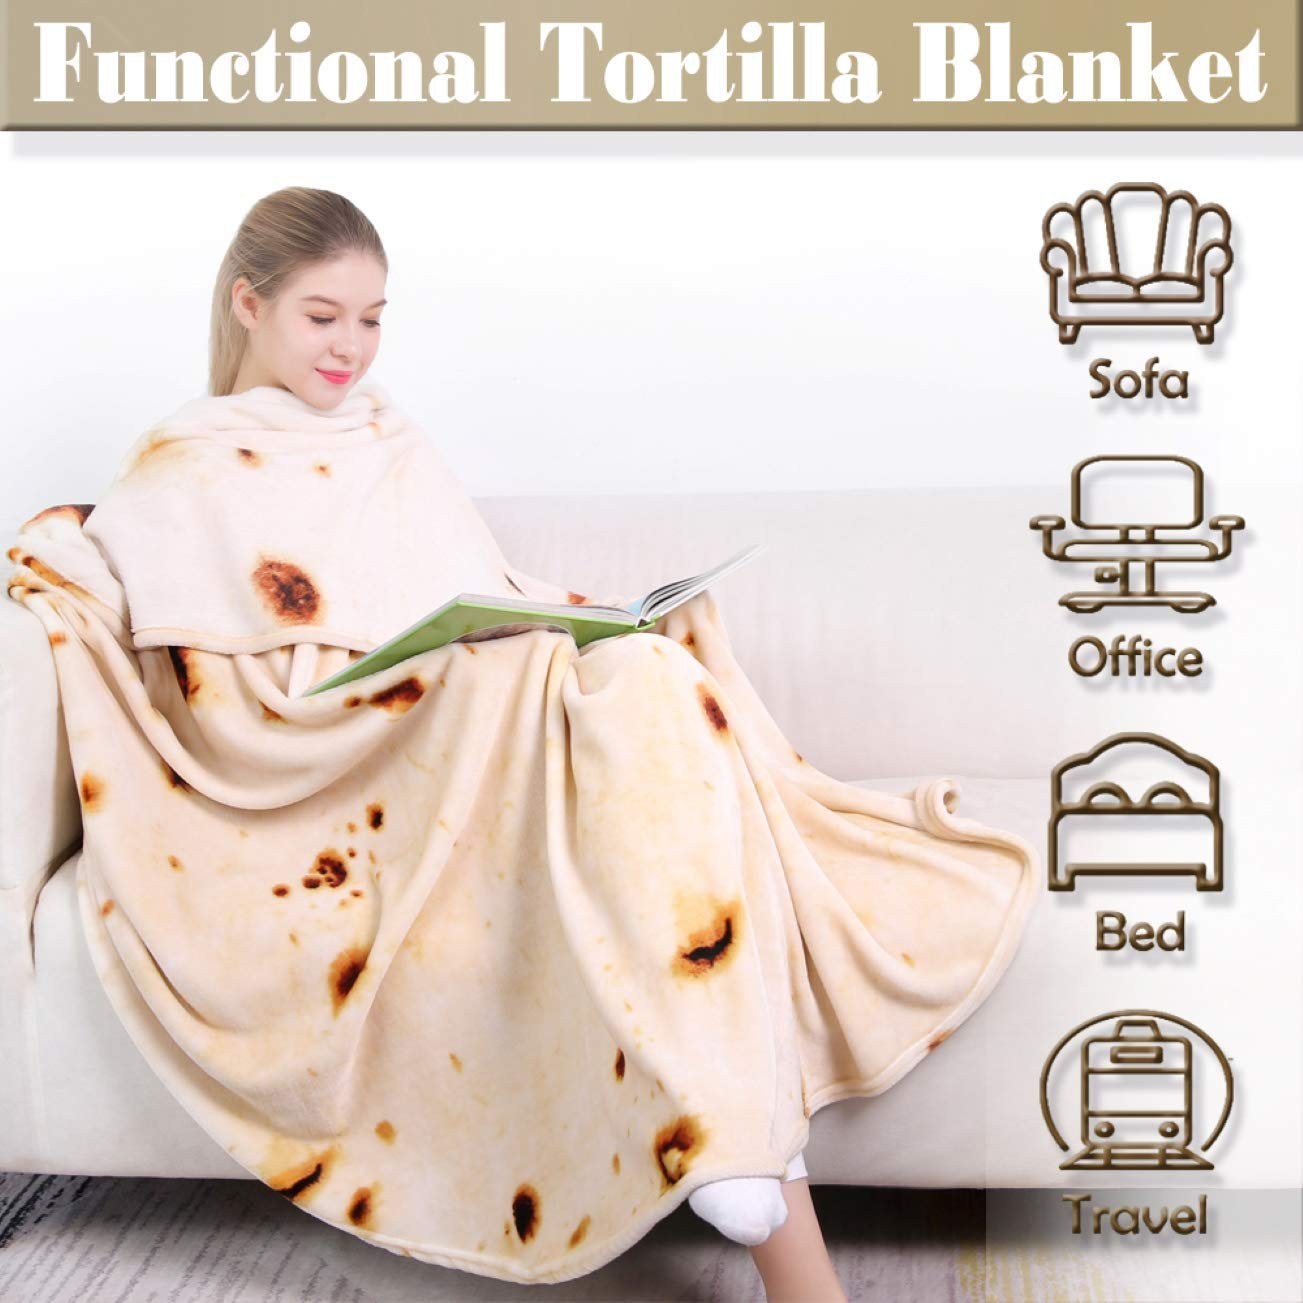 NEPLUTO Burrito Blanket Upgraded 71 inches Burrito Blanket for Adult and Kids Novelty Tortilla Throw Blanket Realistic Soft Flannel Taco Blanket